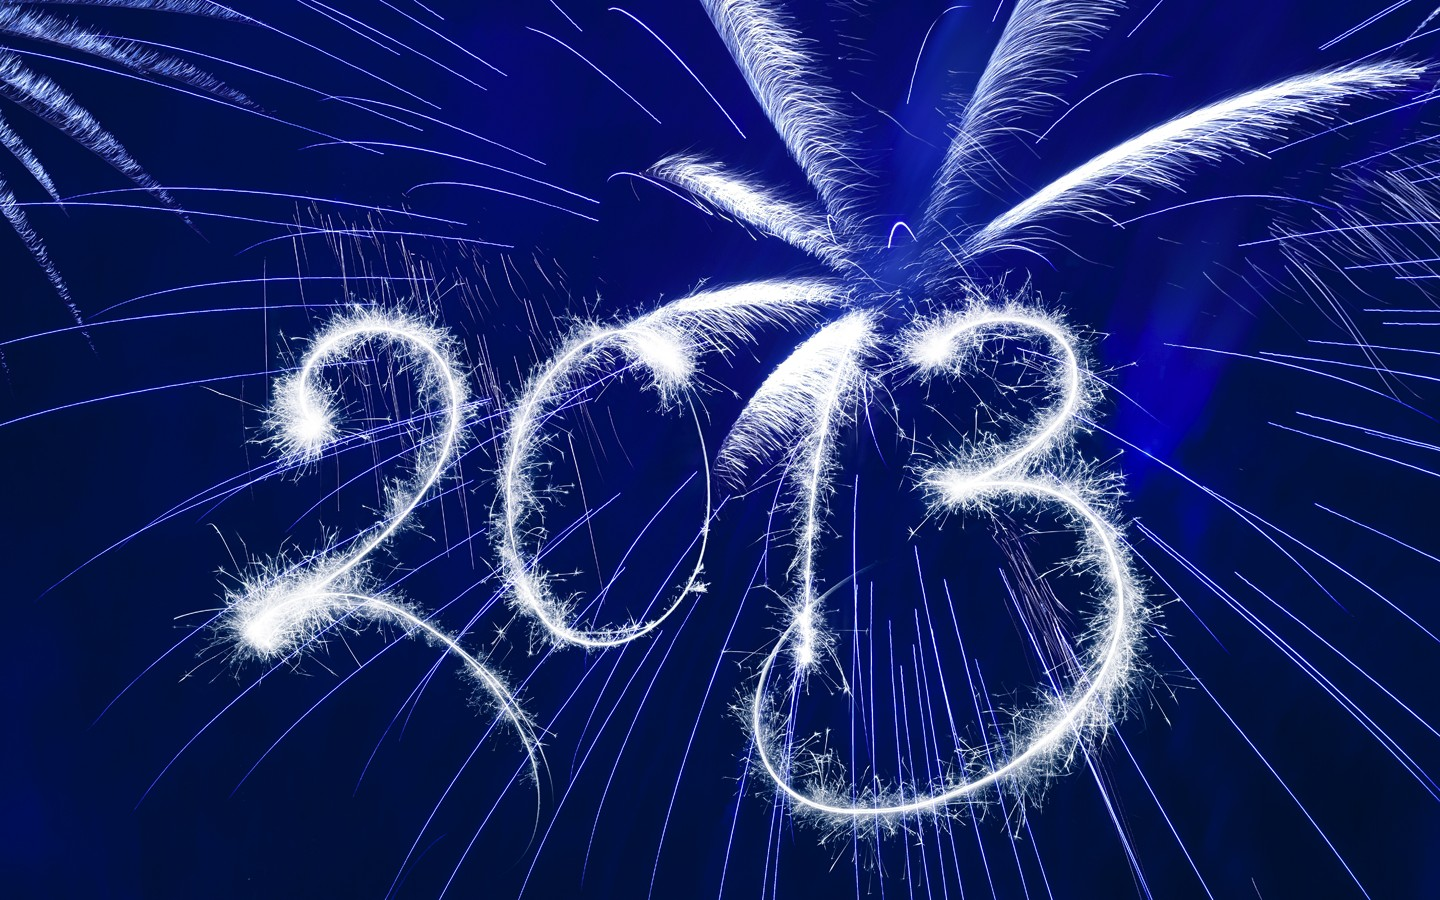 New Year Digital Background 32167